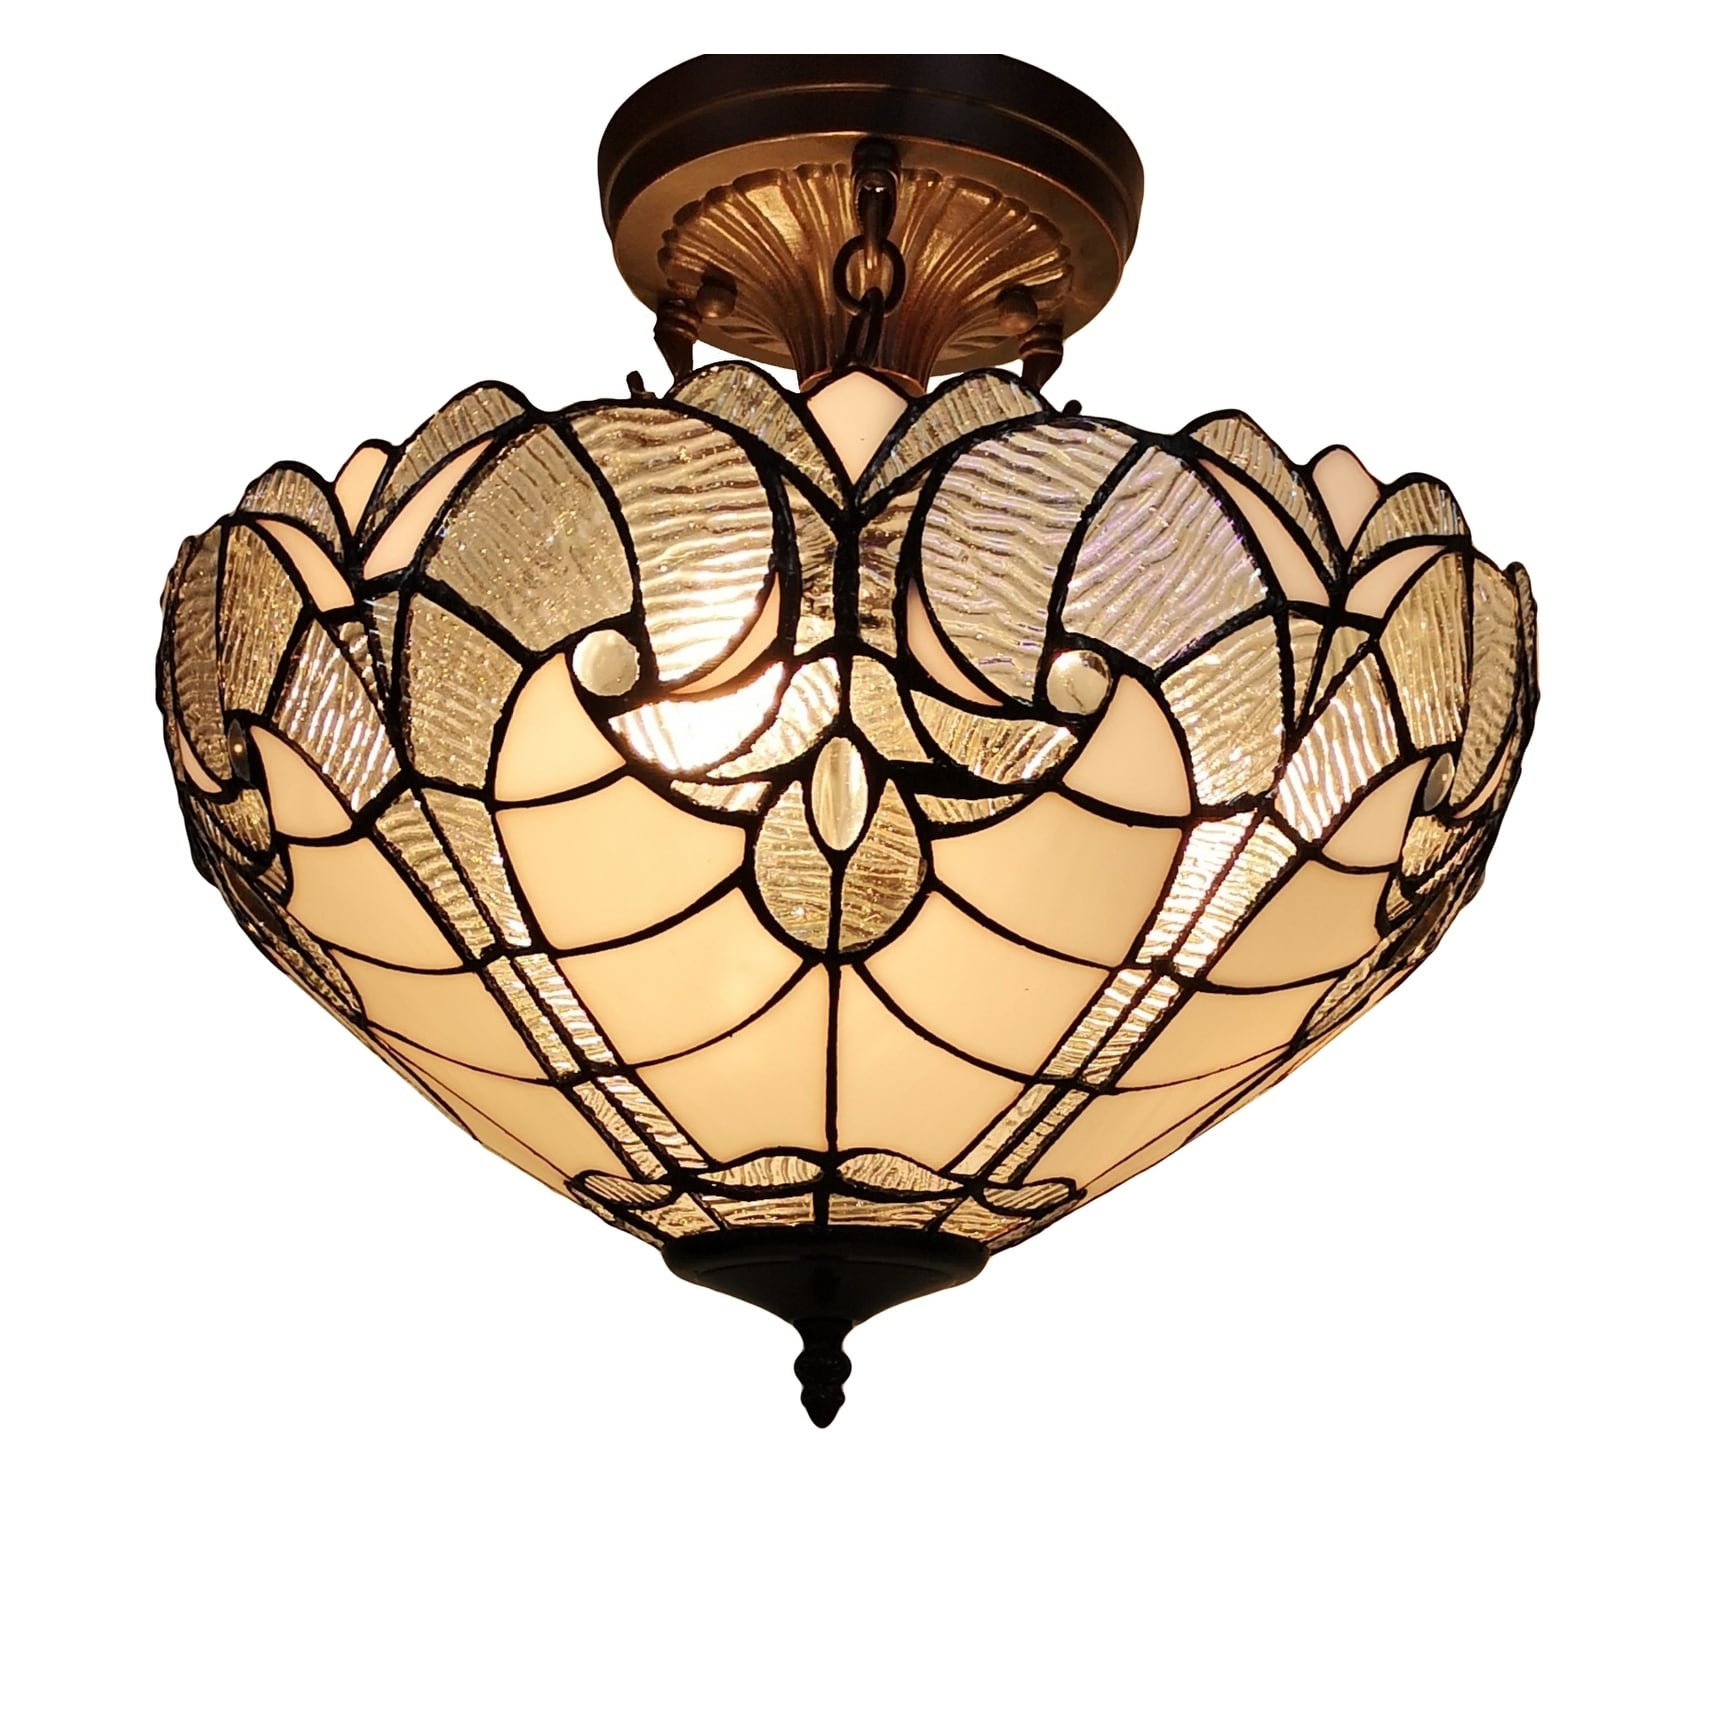 Tiffany Style Ceiling Lamp Fixture Semi Flush 16 Wide White Stained Glass 2 Dining Room Gift Am216hl16b Amora Lighting